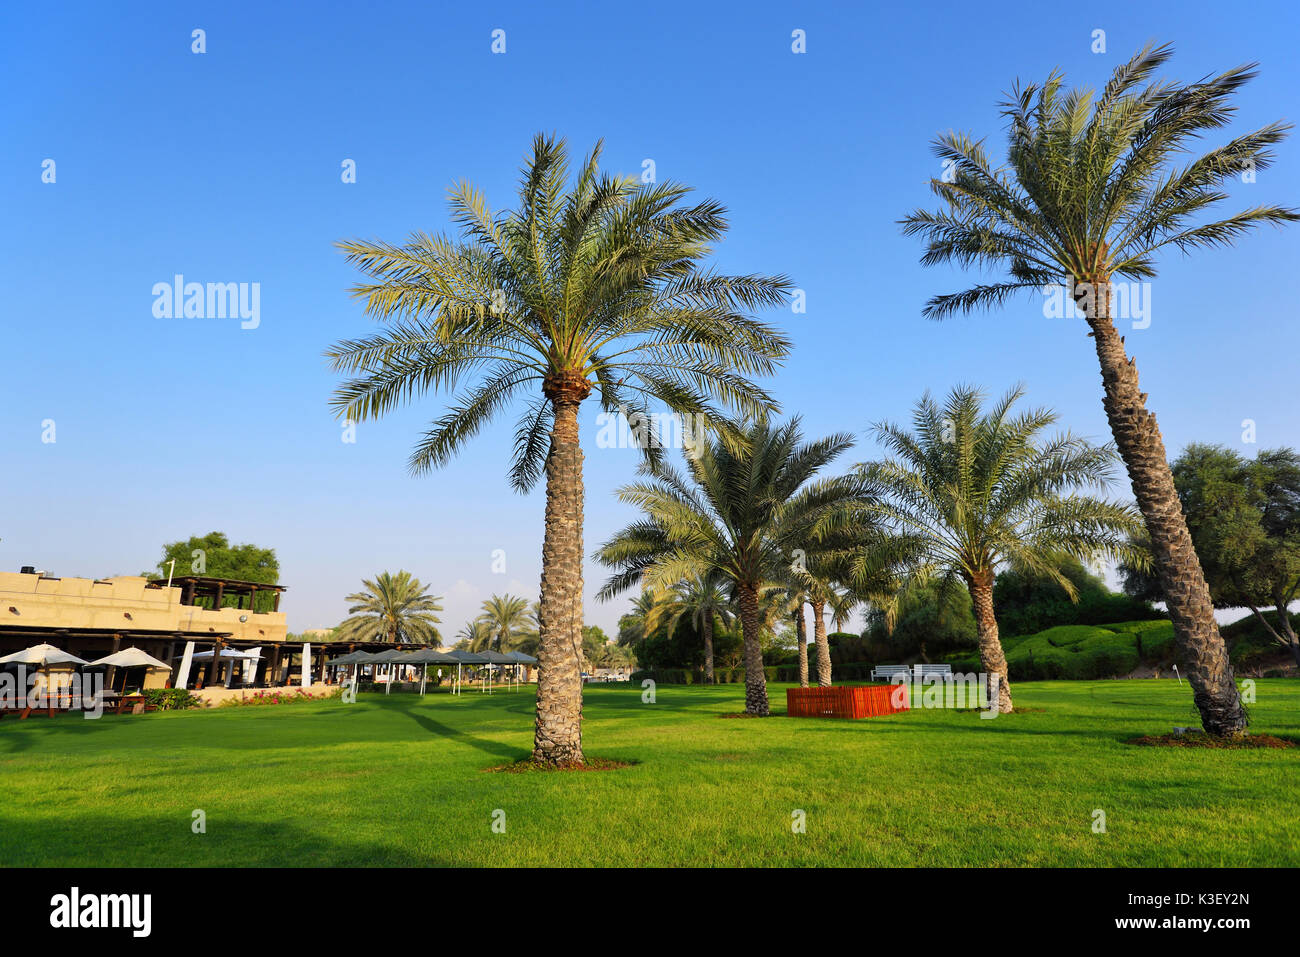 libya desert oasis stock photos libya desert oasis stock images alamy. Black Bedroom Furniture Sets. Home Design Ideas